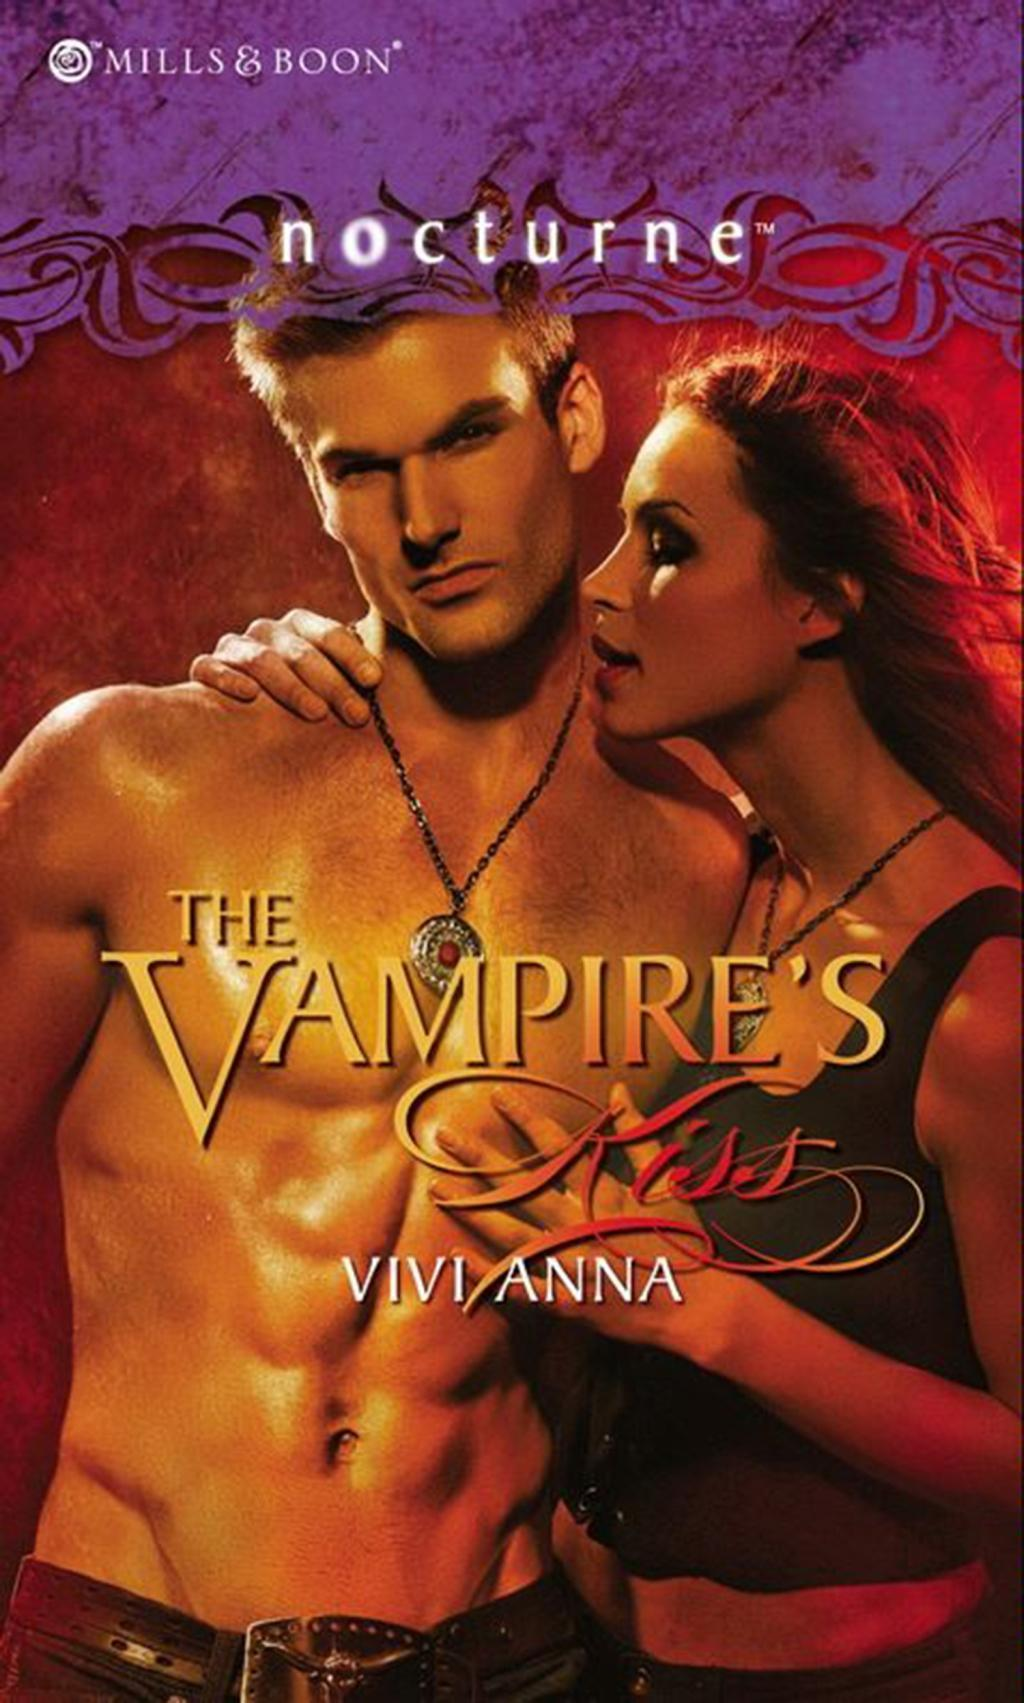 The Vampire's Kiss (Mills & Boon Nocturne)